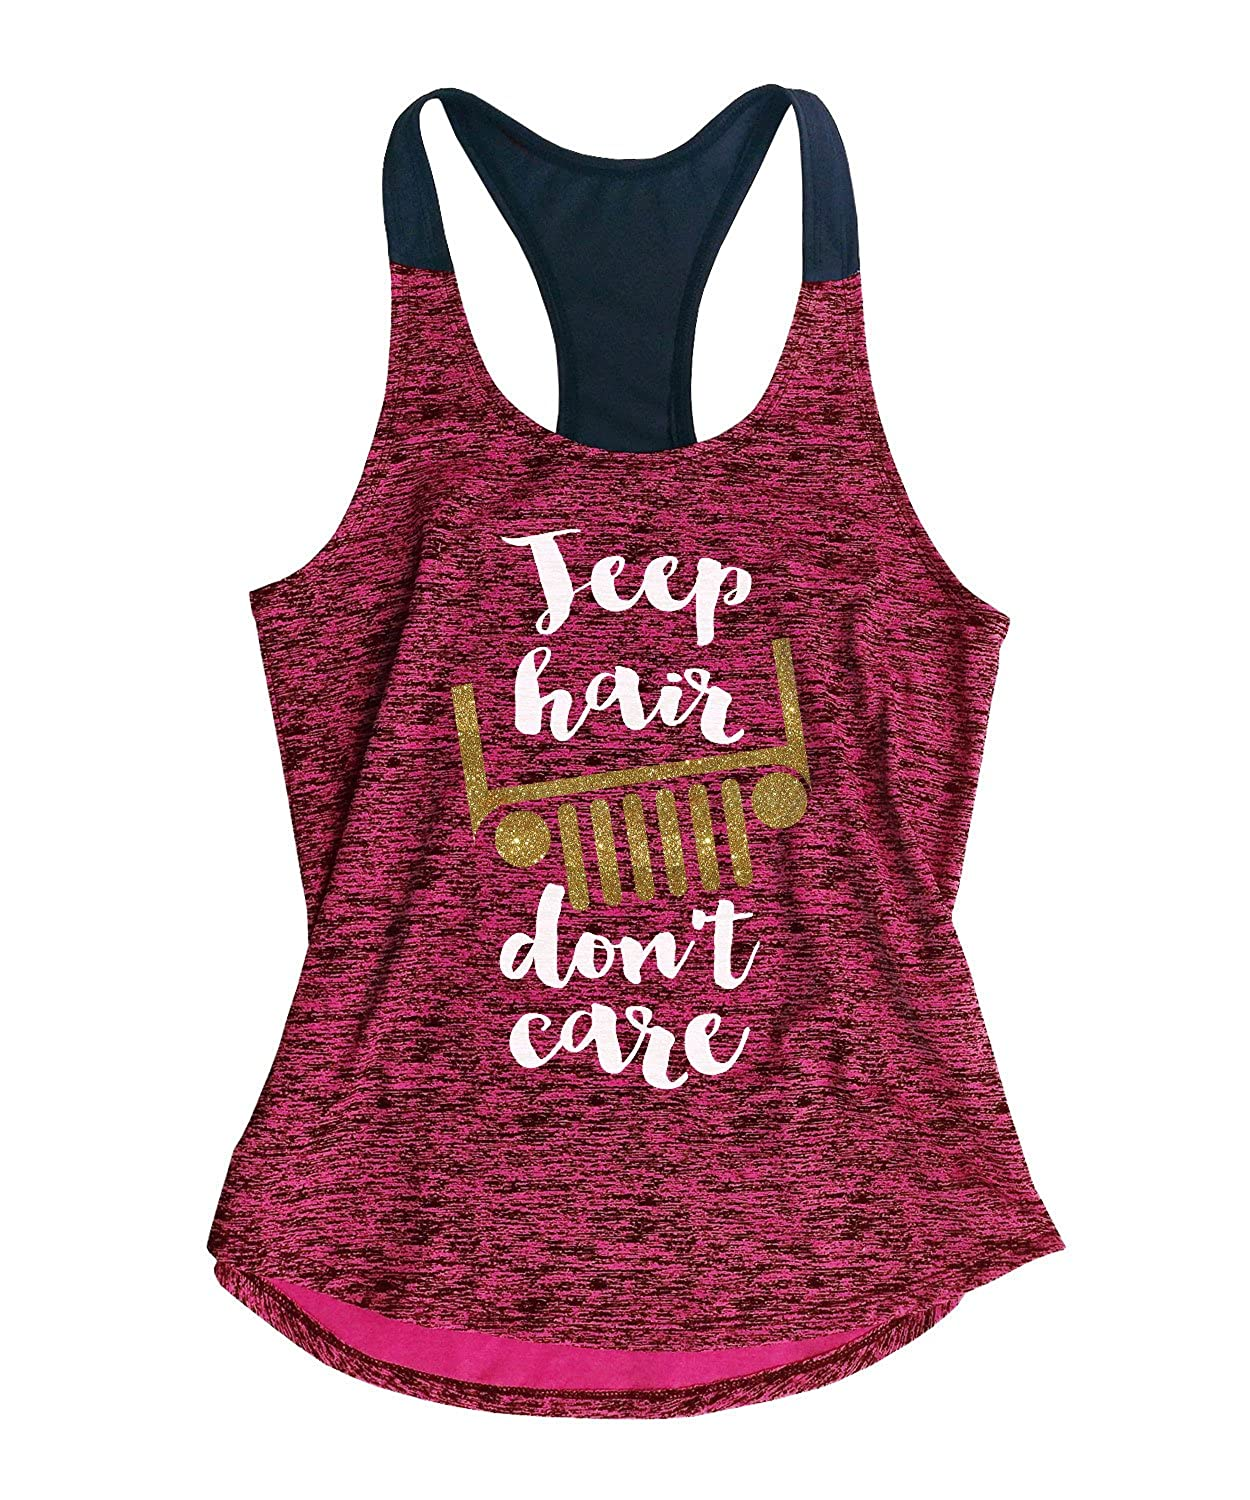 TeeMixed Women's Workout Gym Tank Top Jeep Hair Don't Care